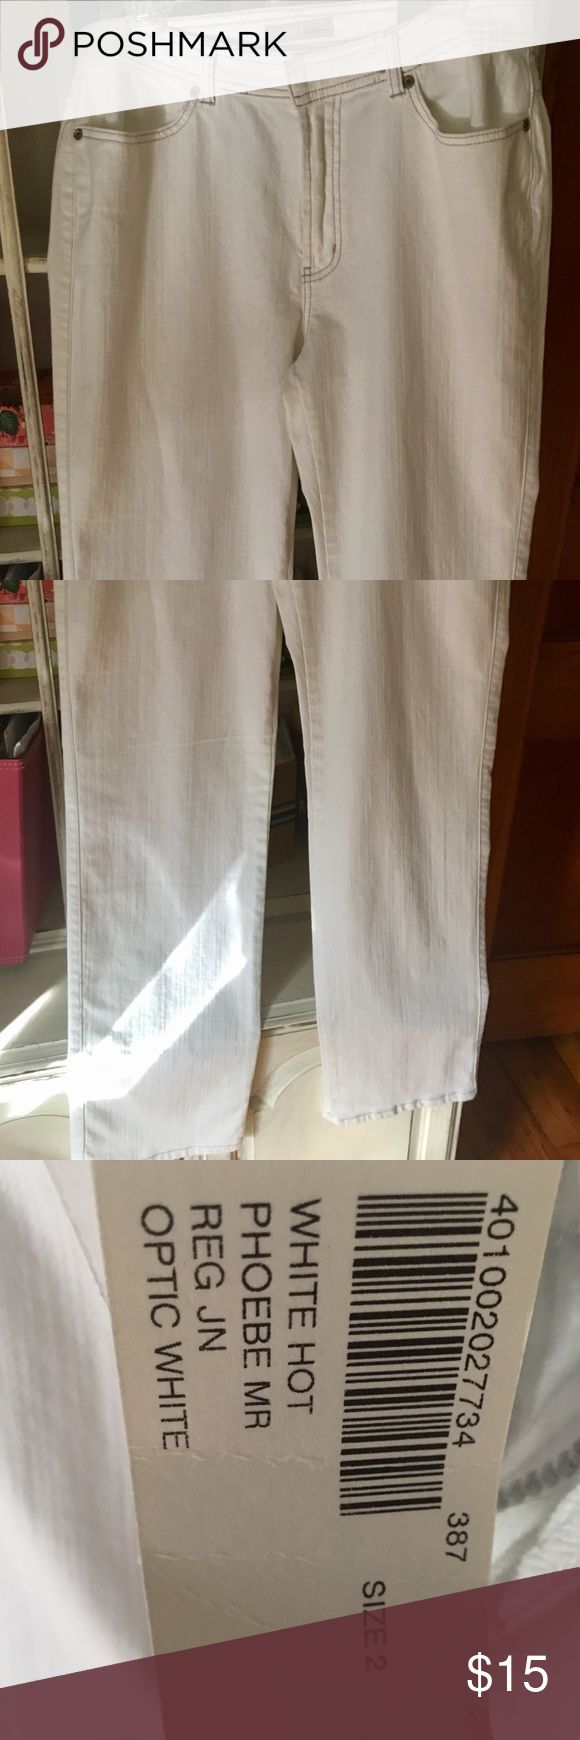 NWT chicos jeans NWT white chicos jeans. They are a size 2 in chicos size guides which is a size 12 in normal sizing. Super cute and right for summer Chico's Jeans